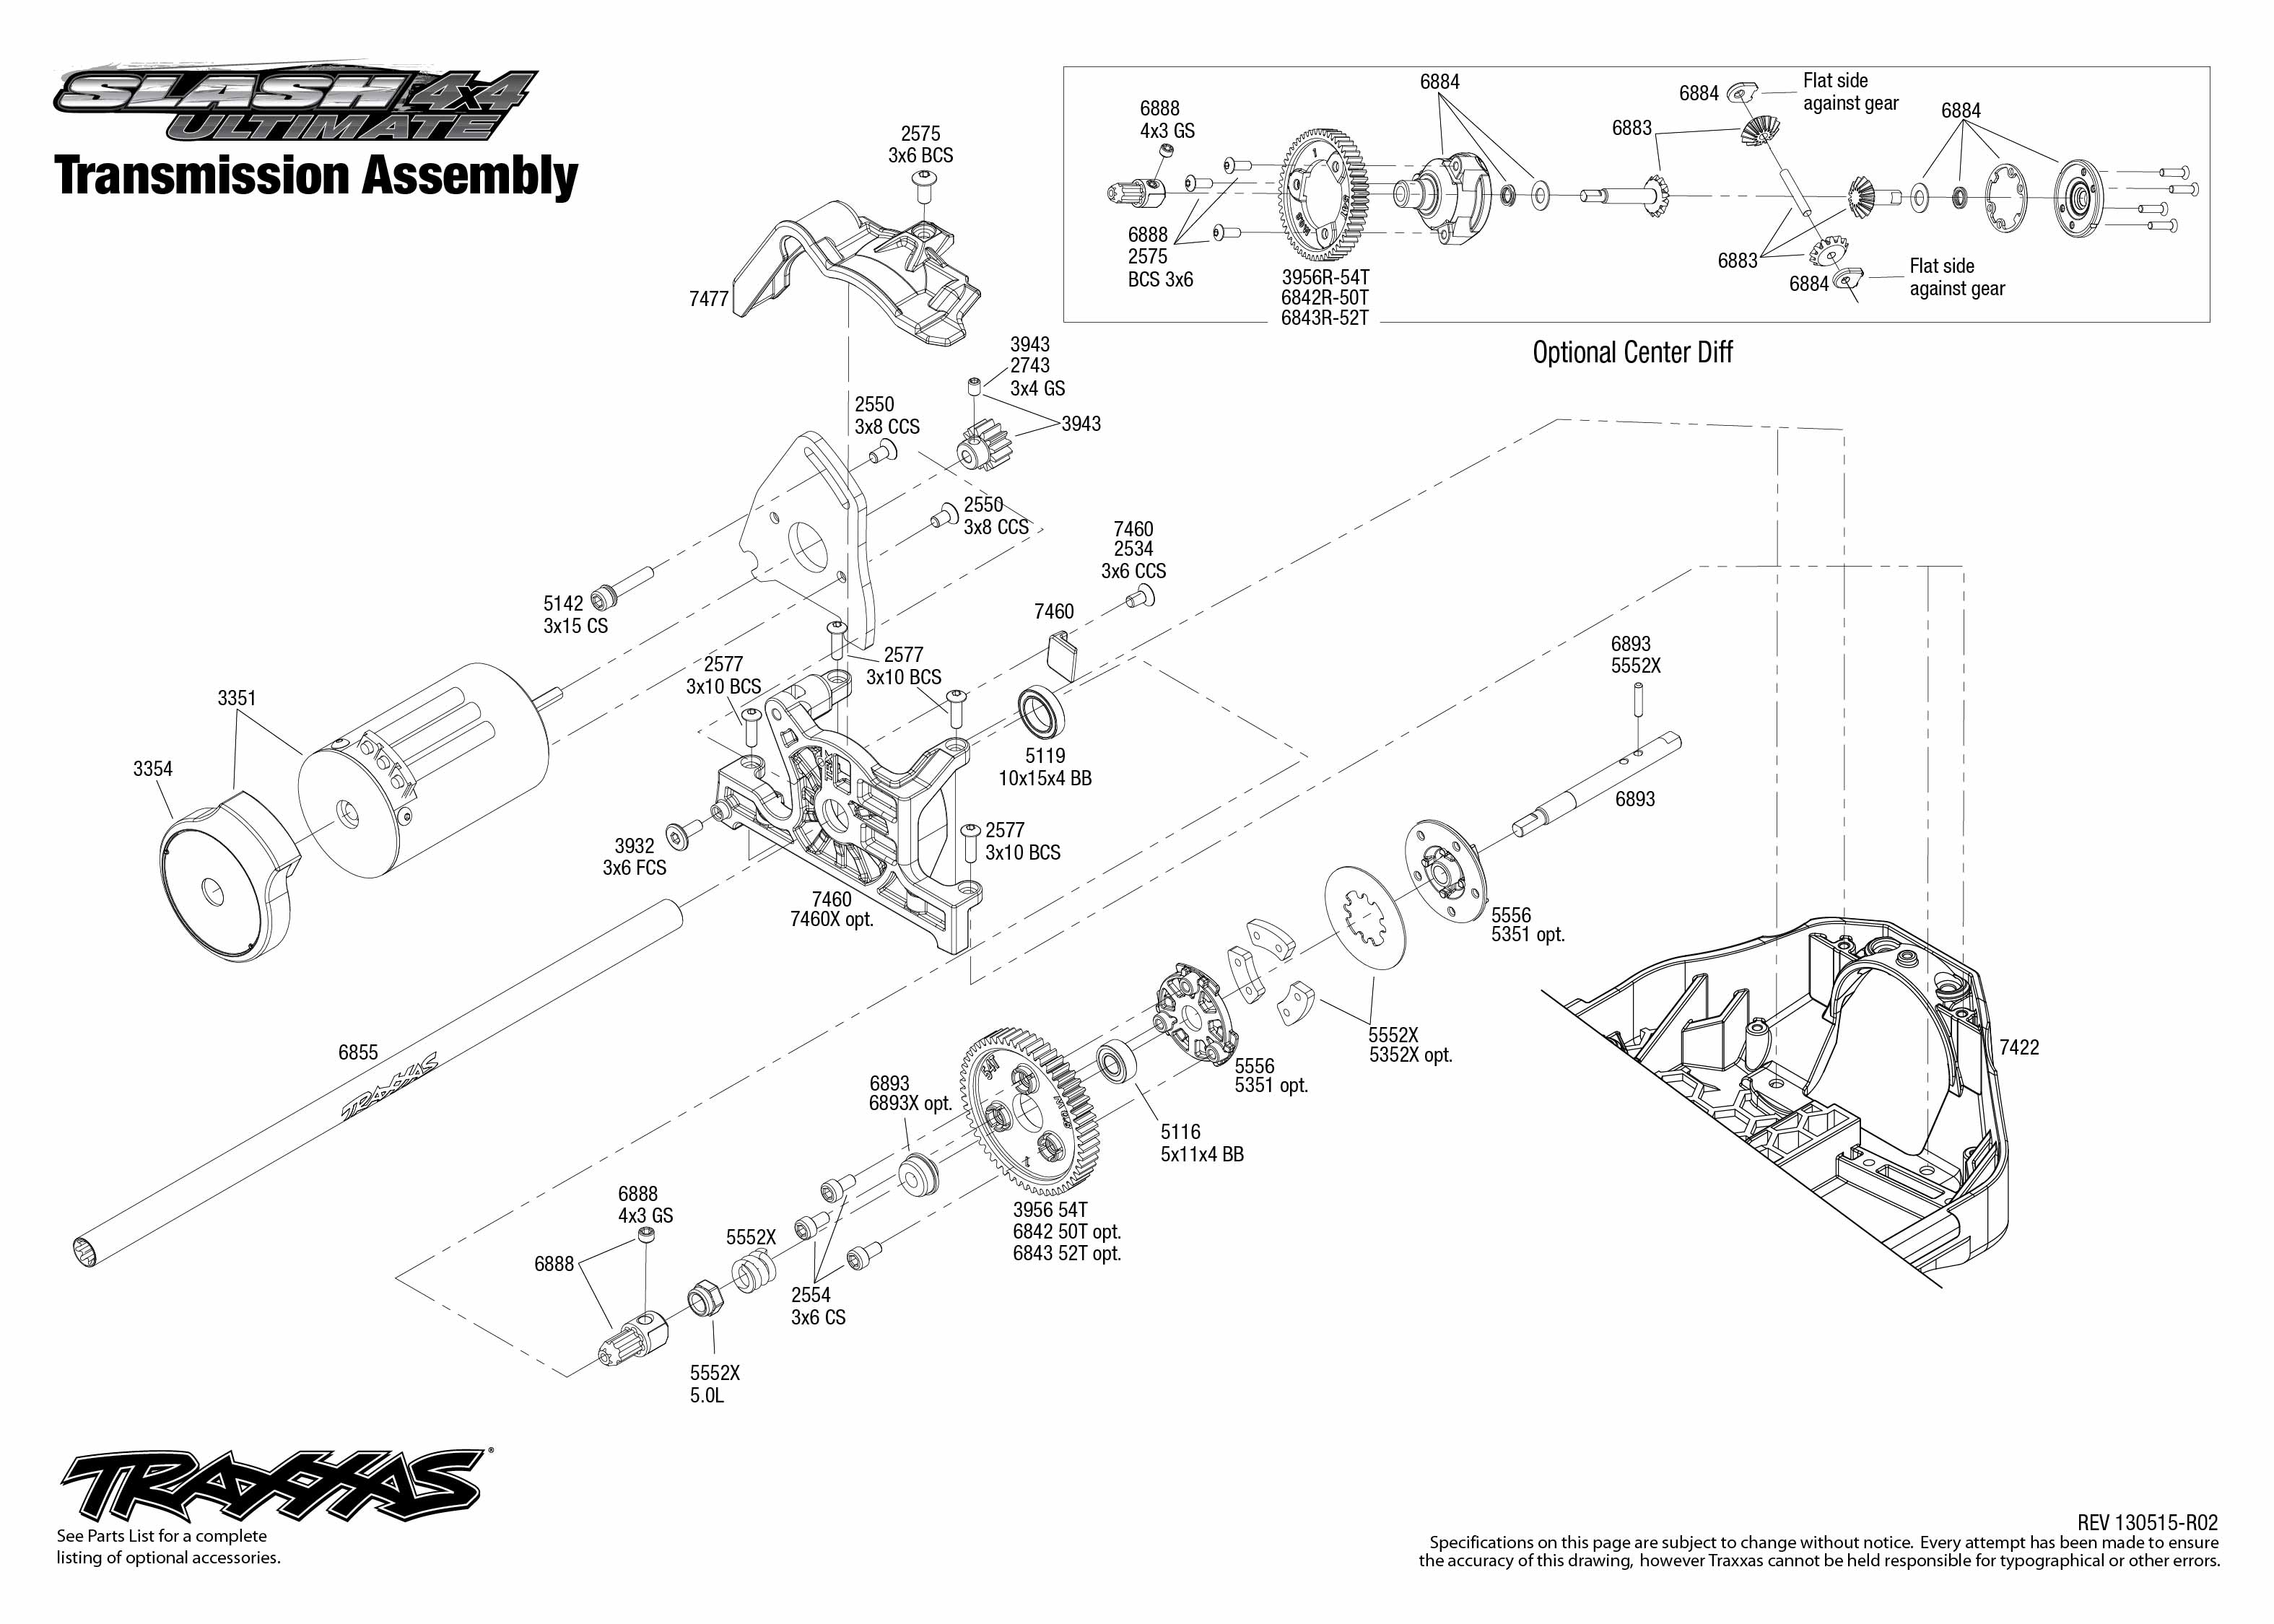 traxxas slash user manual how to and user guide instructions u2022 rh taxibermuda co traxxas stampede 4x4 vxl parts diagram traxxas stampede 4x4 vxl parts diagram